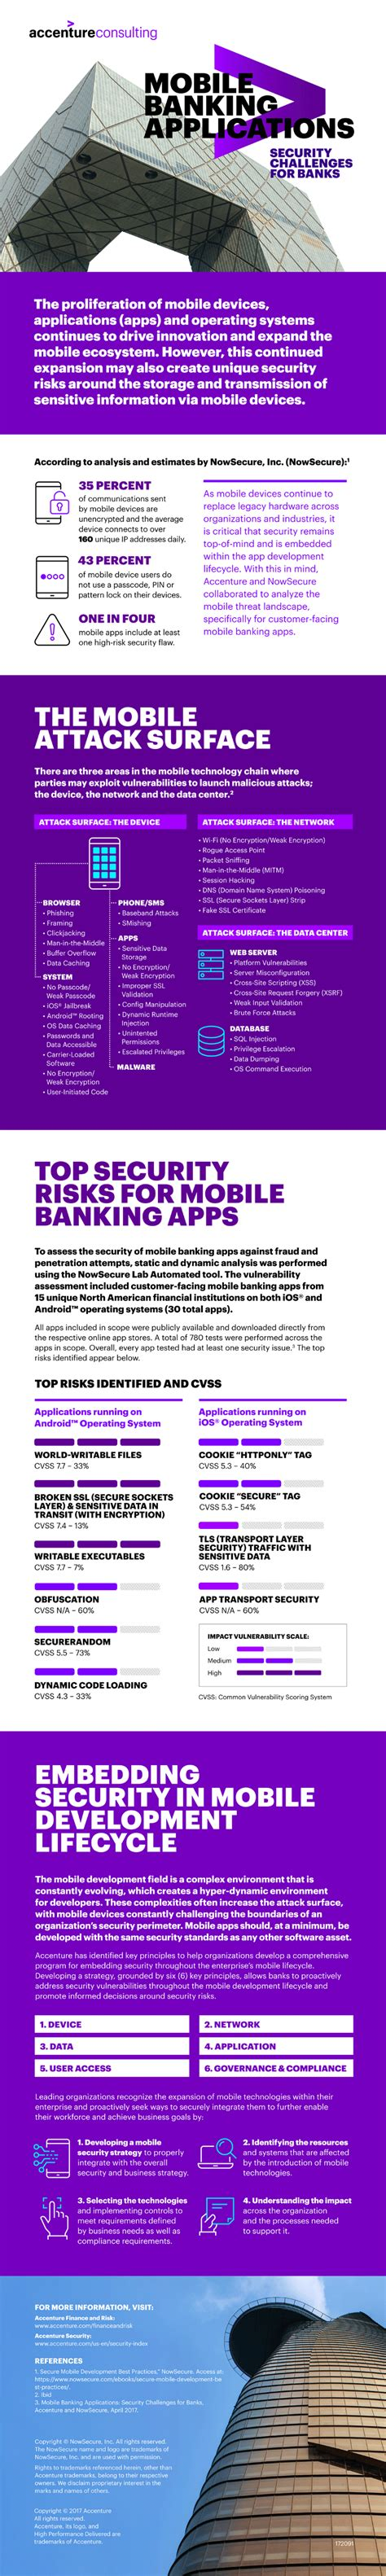 sicherheit bank sicherheit bei mobile banking apps infografik